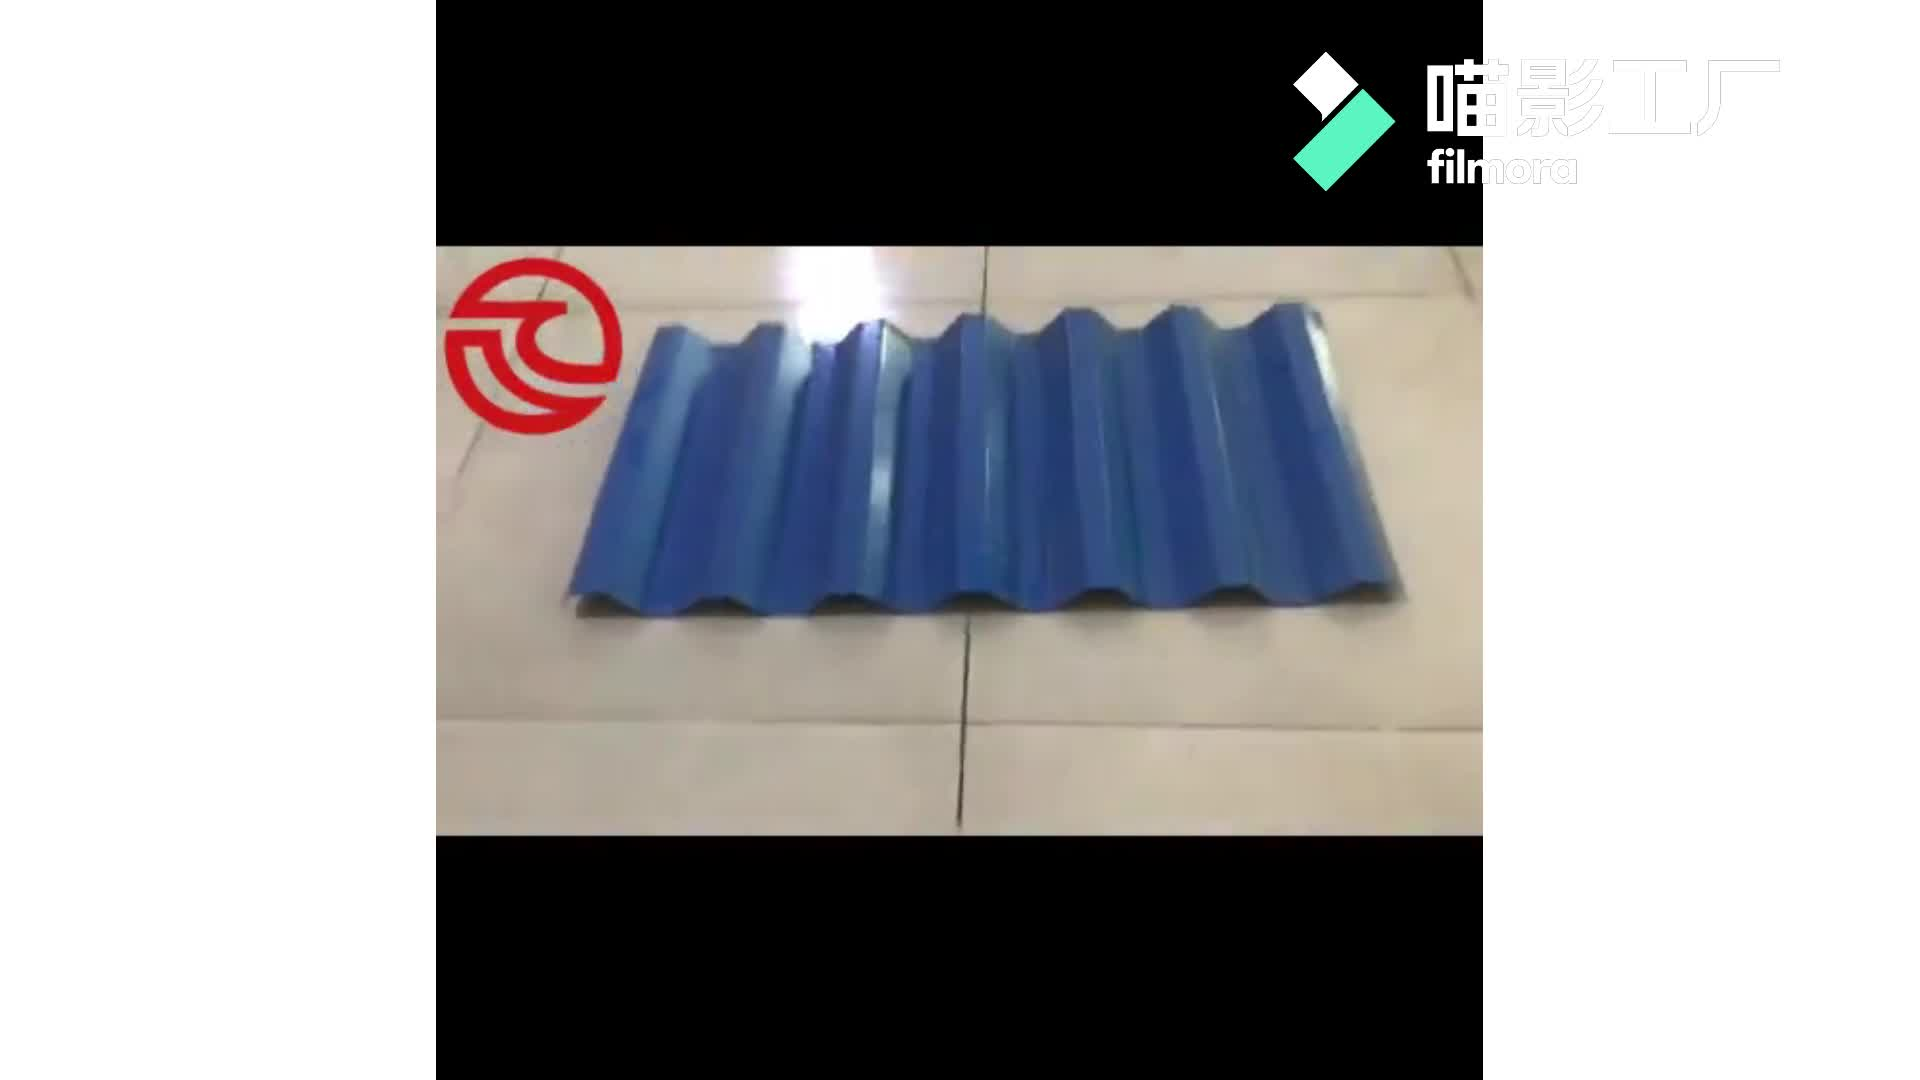 4x84 750 wave galvanized corrugated steel sheet for house roofing materials